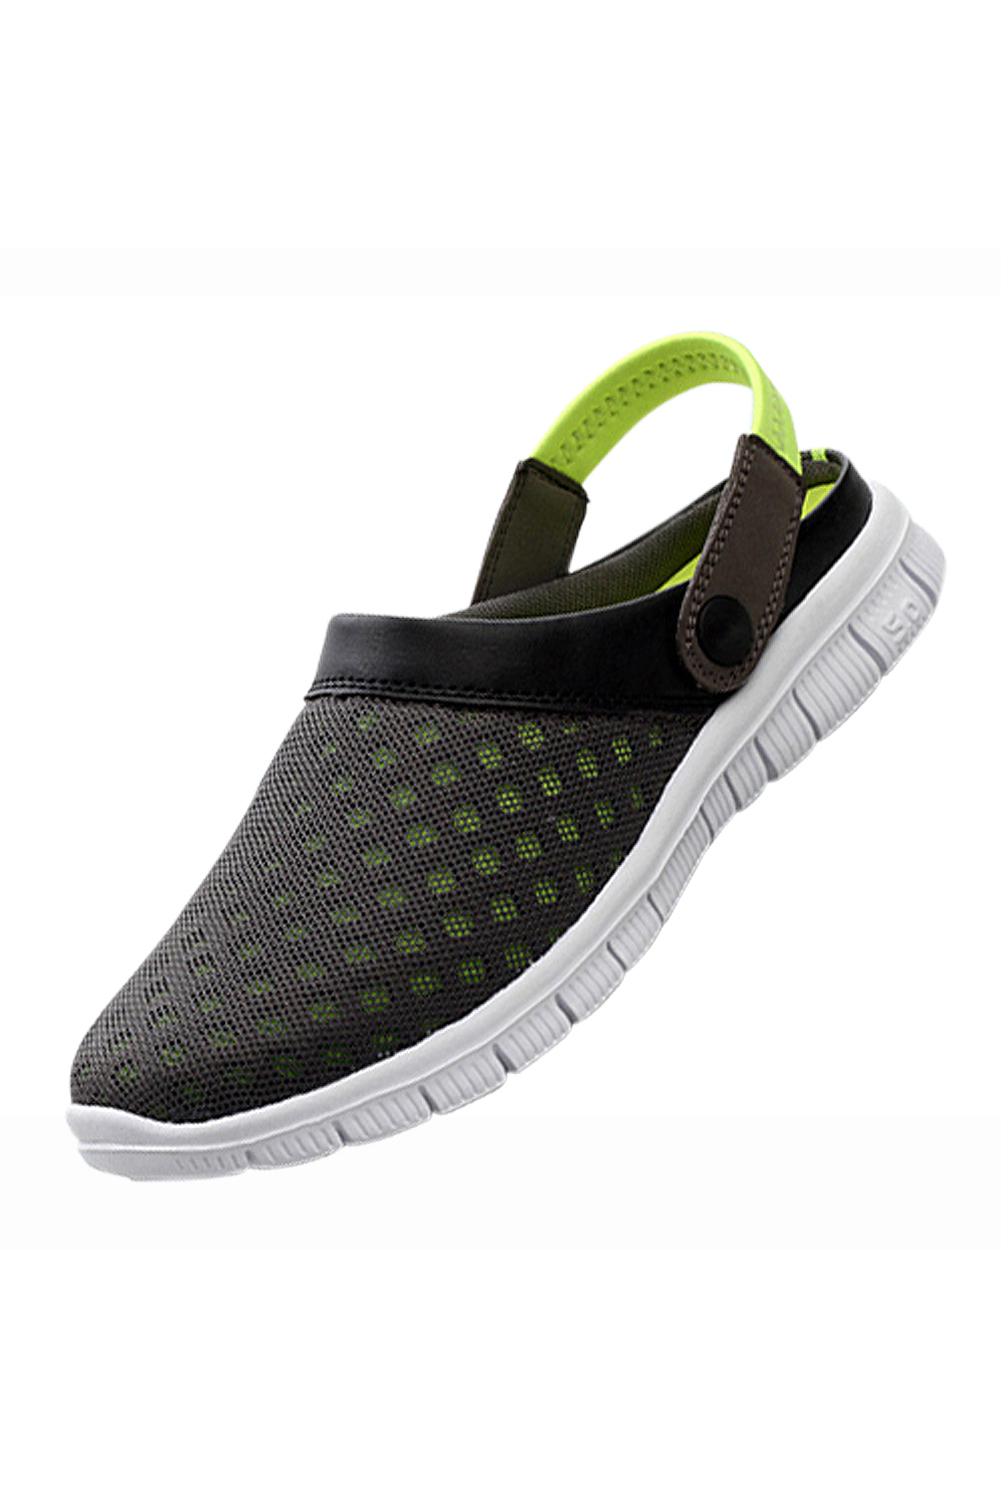 New Summer New Men Women Slip-on Sneakers Hot Sale Mesh Breathable Sports Leisure Shoes Unisex Couples Casual Shoes aliexpress 2016 summer new european and american youth popular hot sale men slim casual denim shorts cheap wholesale